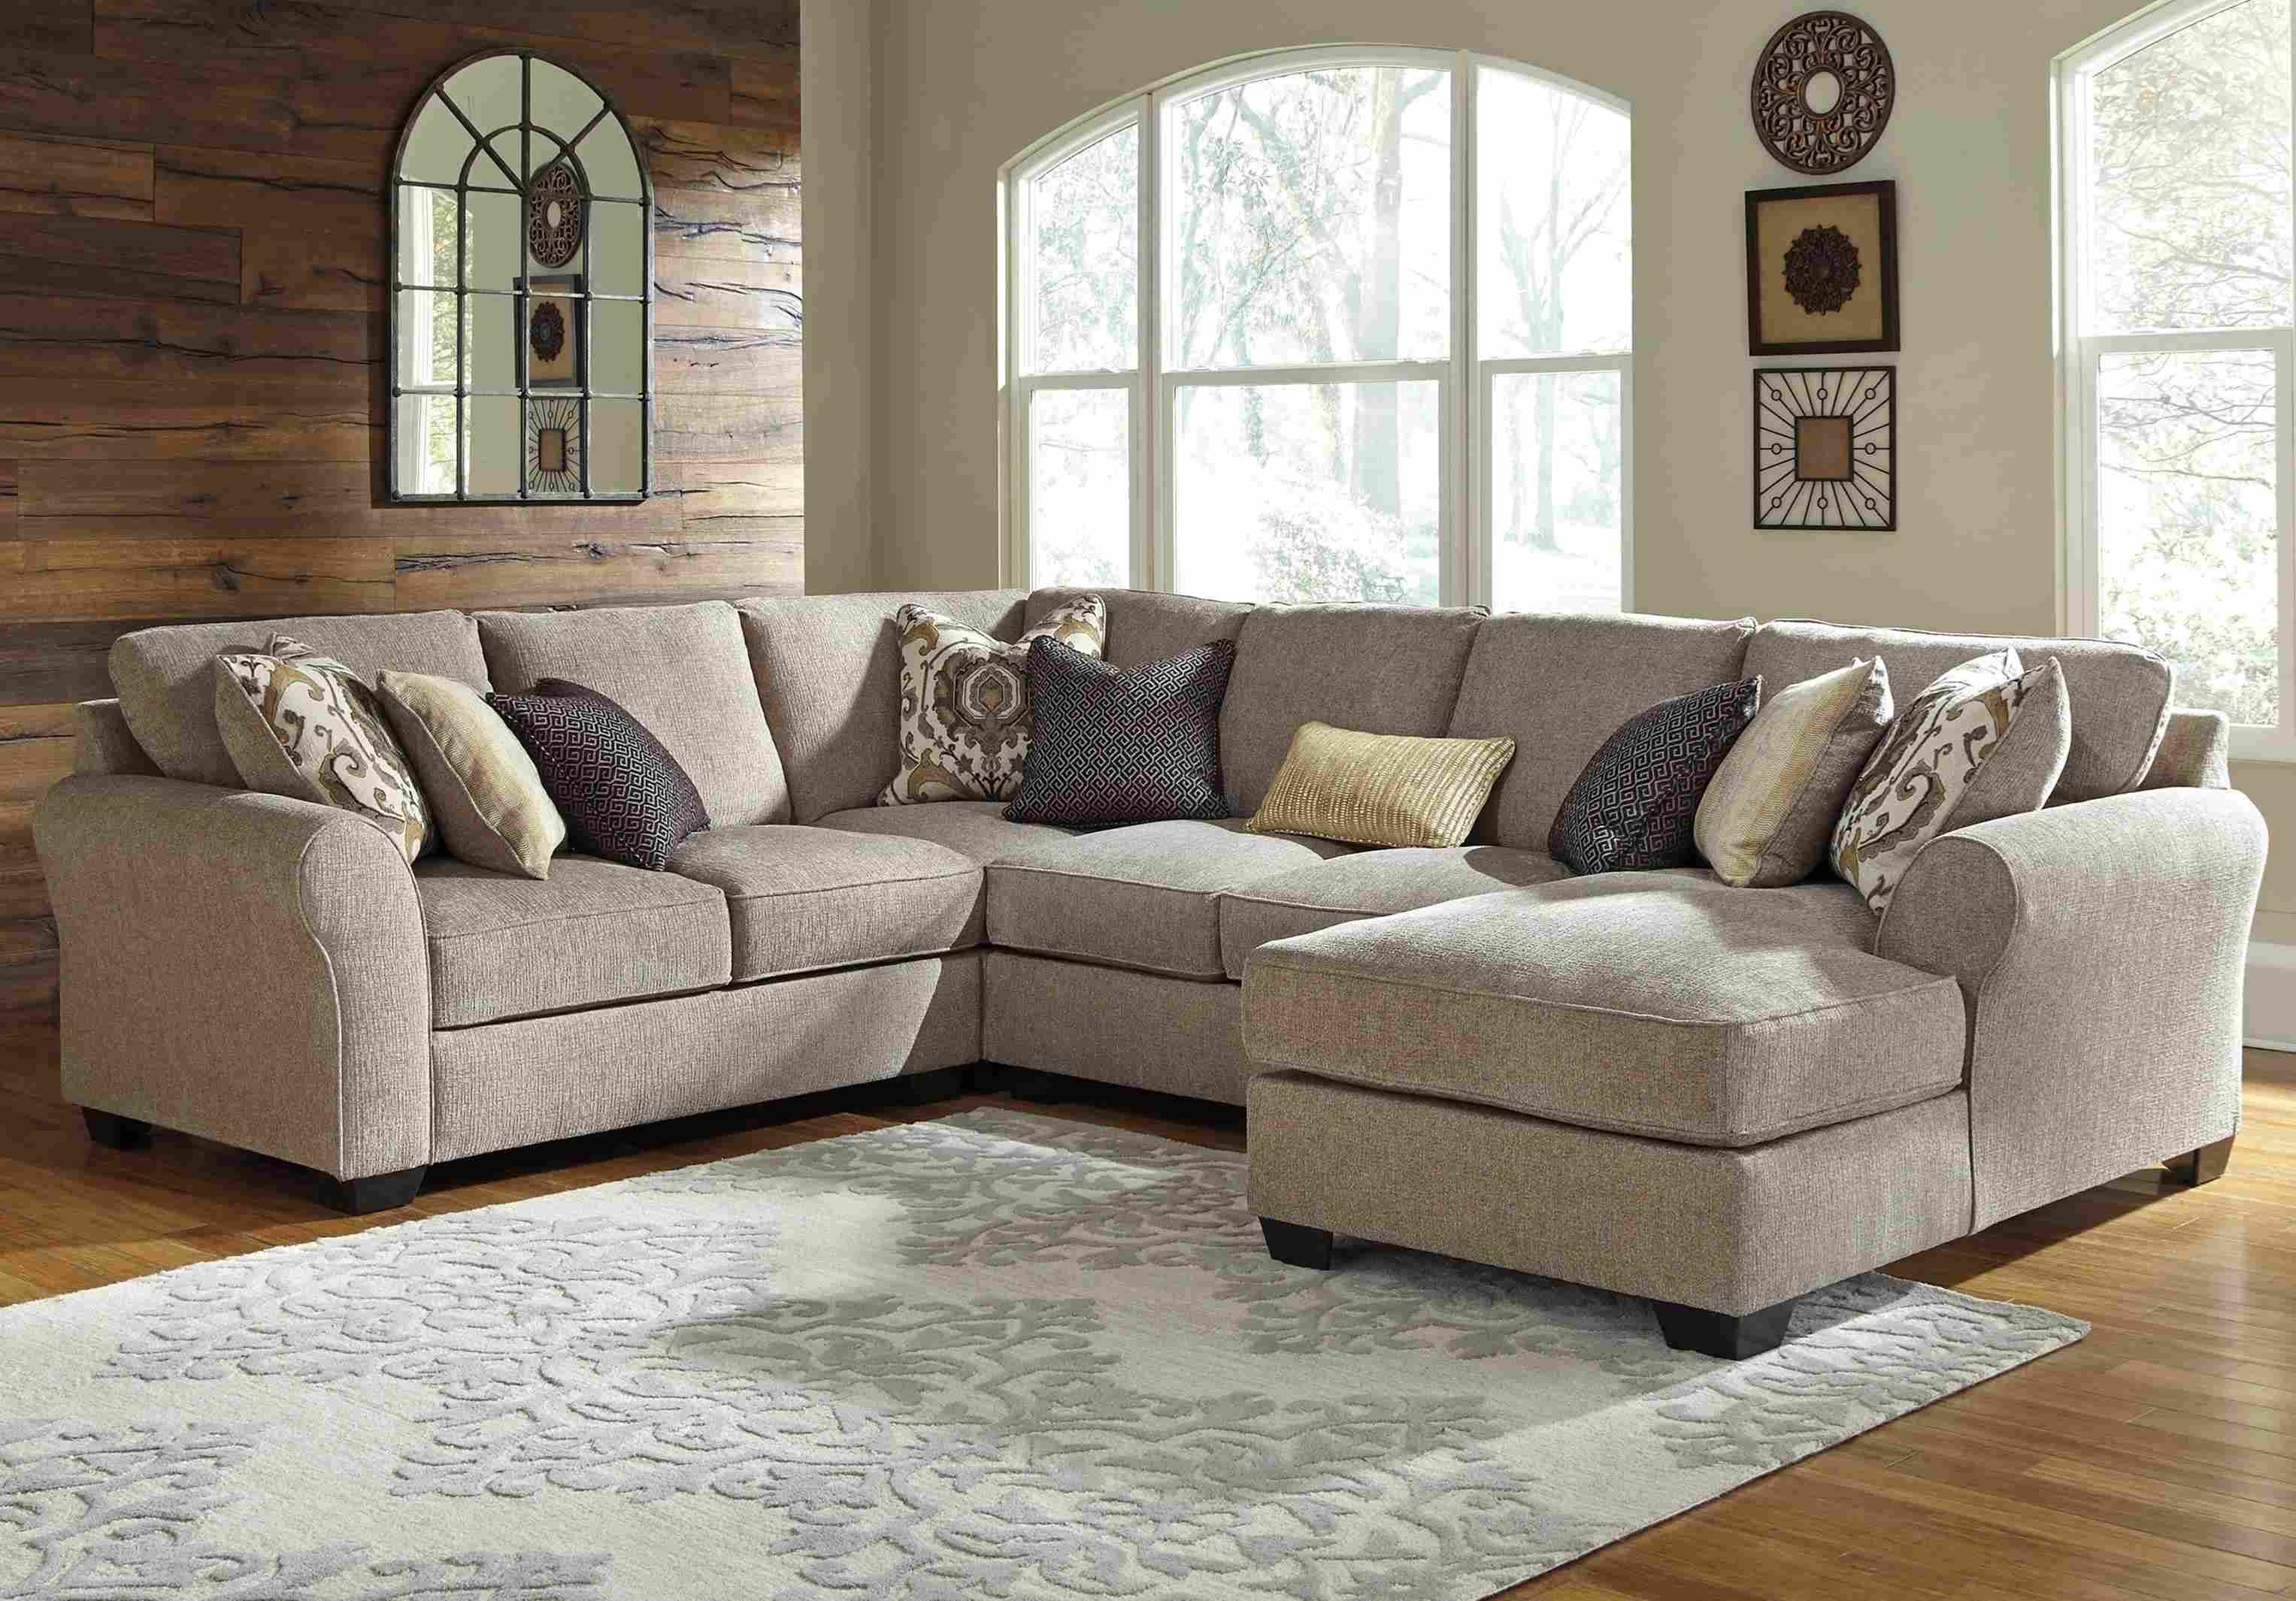 Microfiberctional Sofa With Chaise Amazing Photo Inspirations Pertaining To Arrowmask 2 Piece Sectionals With Laf Chaise (Image 18 of 25)